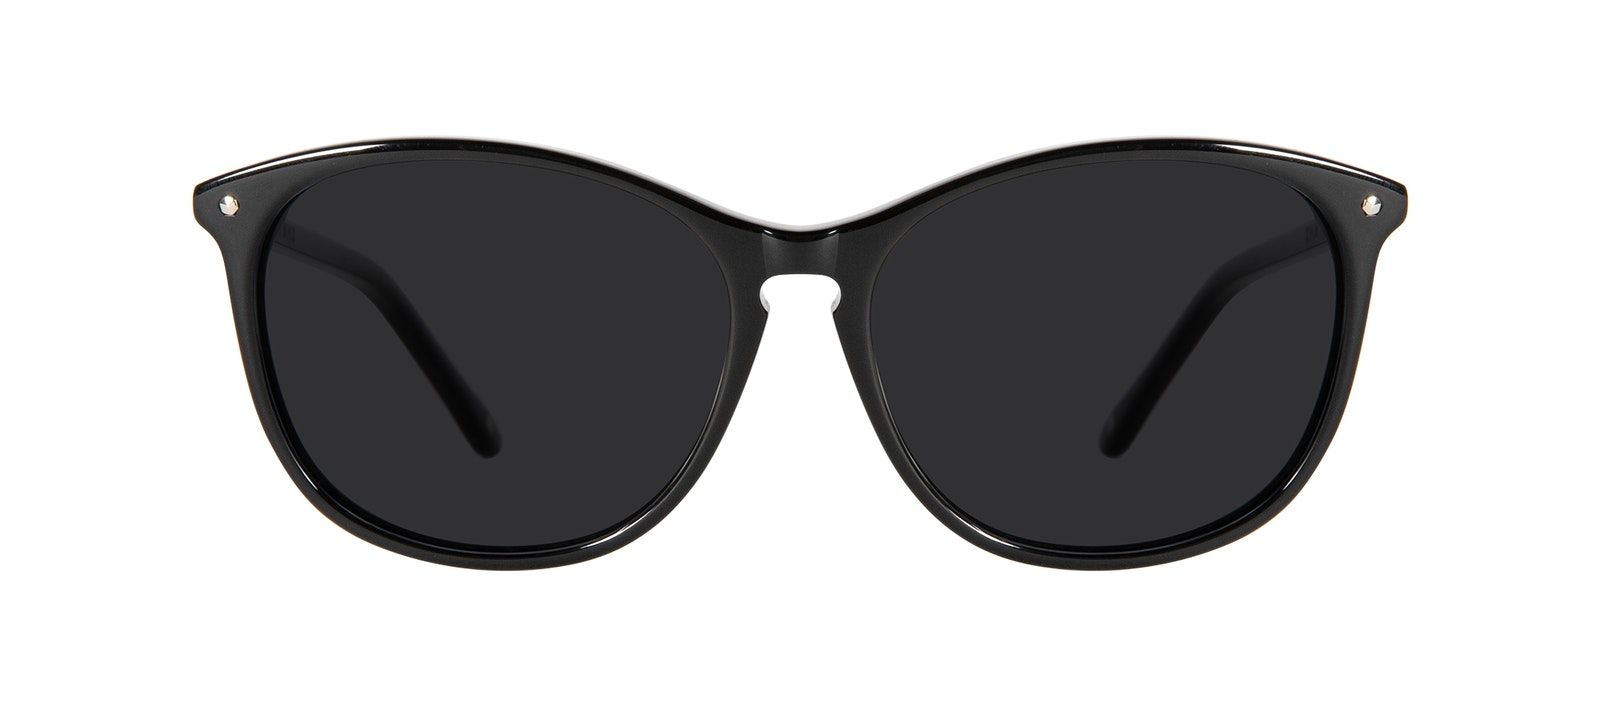 Affordable Fashion Glasses Round Sunglasses Women Nadine Petite Pitch Black Front